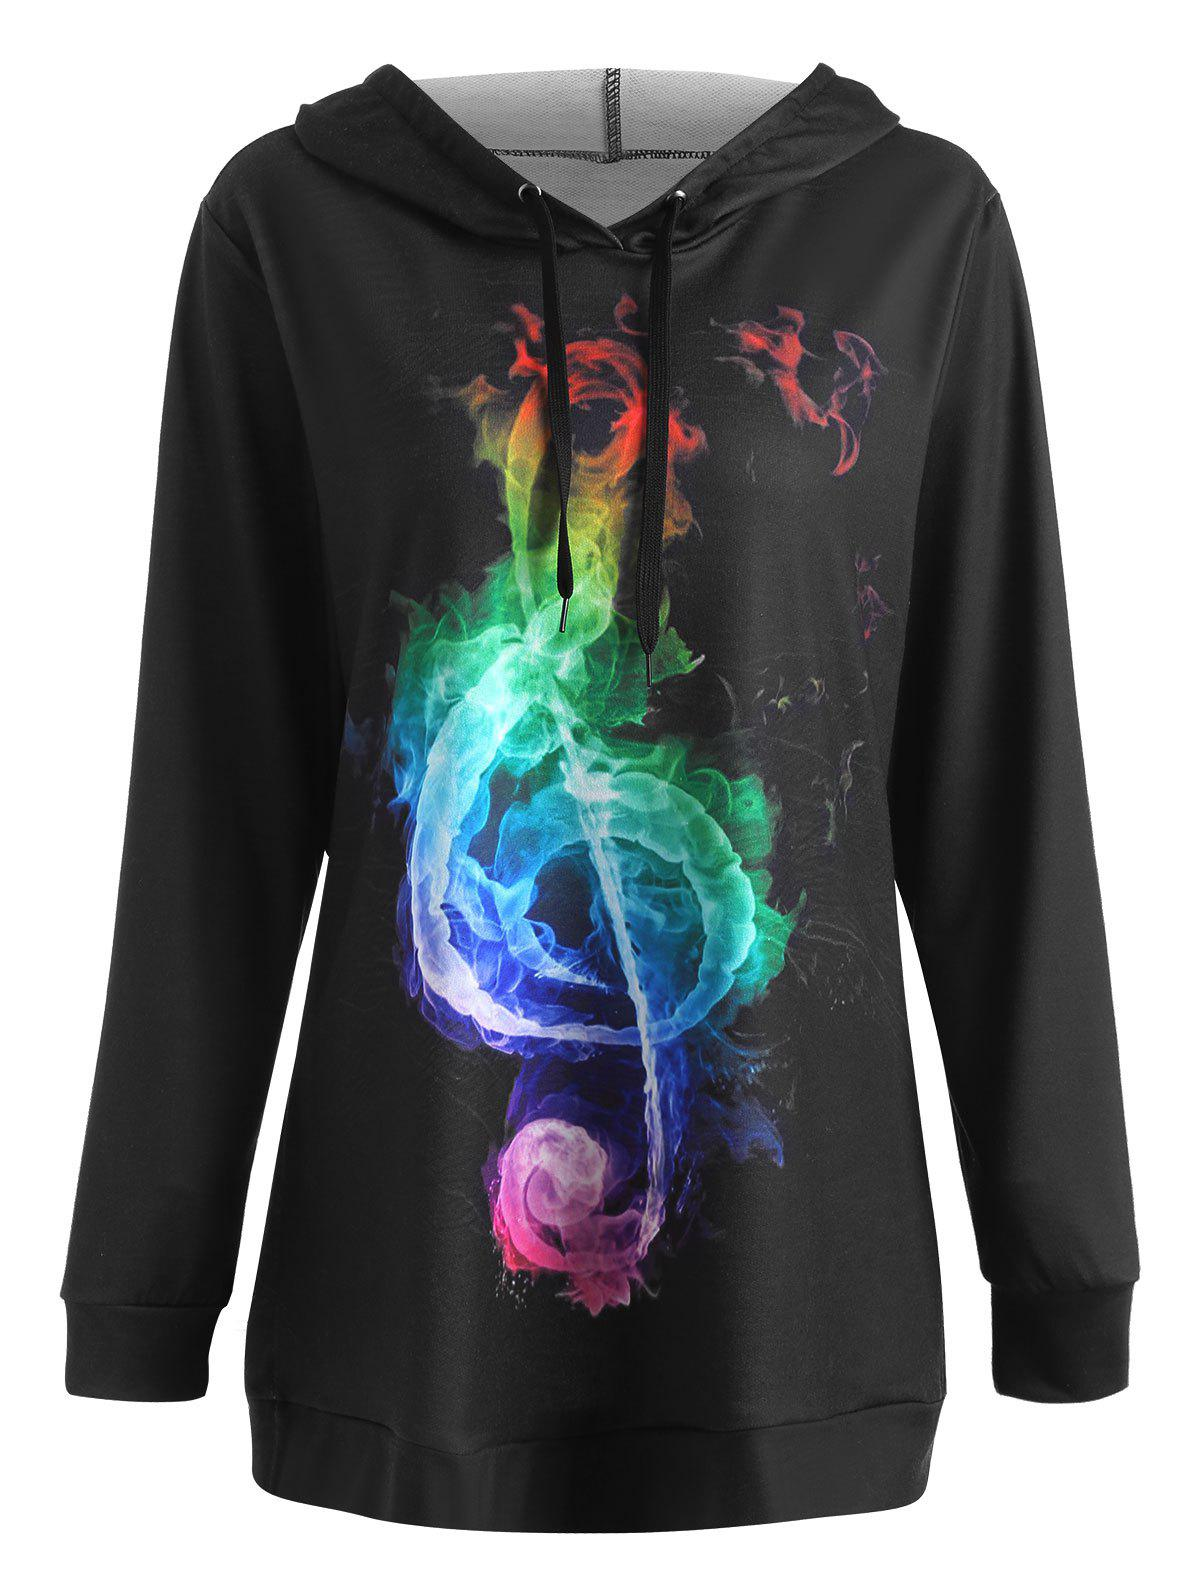 Plus Size Colorful Musical Note Graphic HoodieWOMEN<br><br>Size: 2XL; Color: BLACK; Material: Cotton Blend,Polyester; Shirt Length: Regular; Sleeve Length: Full; Style: Casual; Pattern Style: Print; Season: Fall,Winter; Weight: 0.4500kg; Package Contents: 1 x Hoodie;